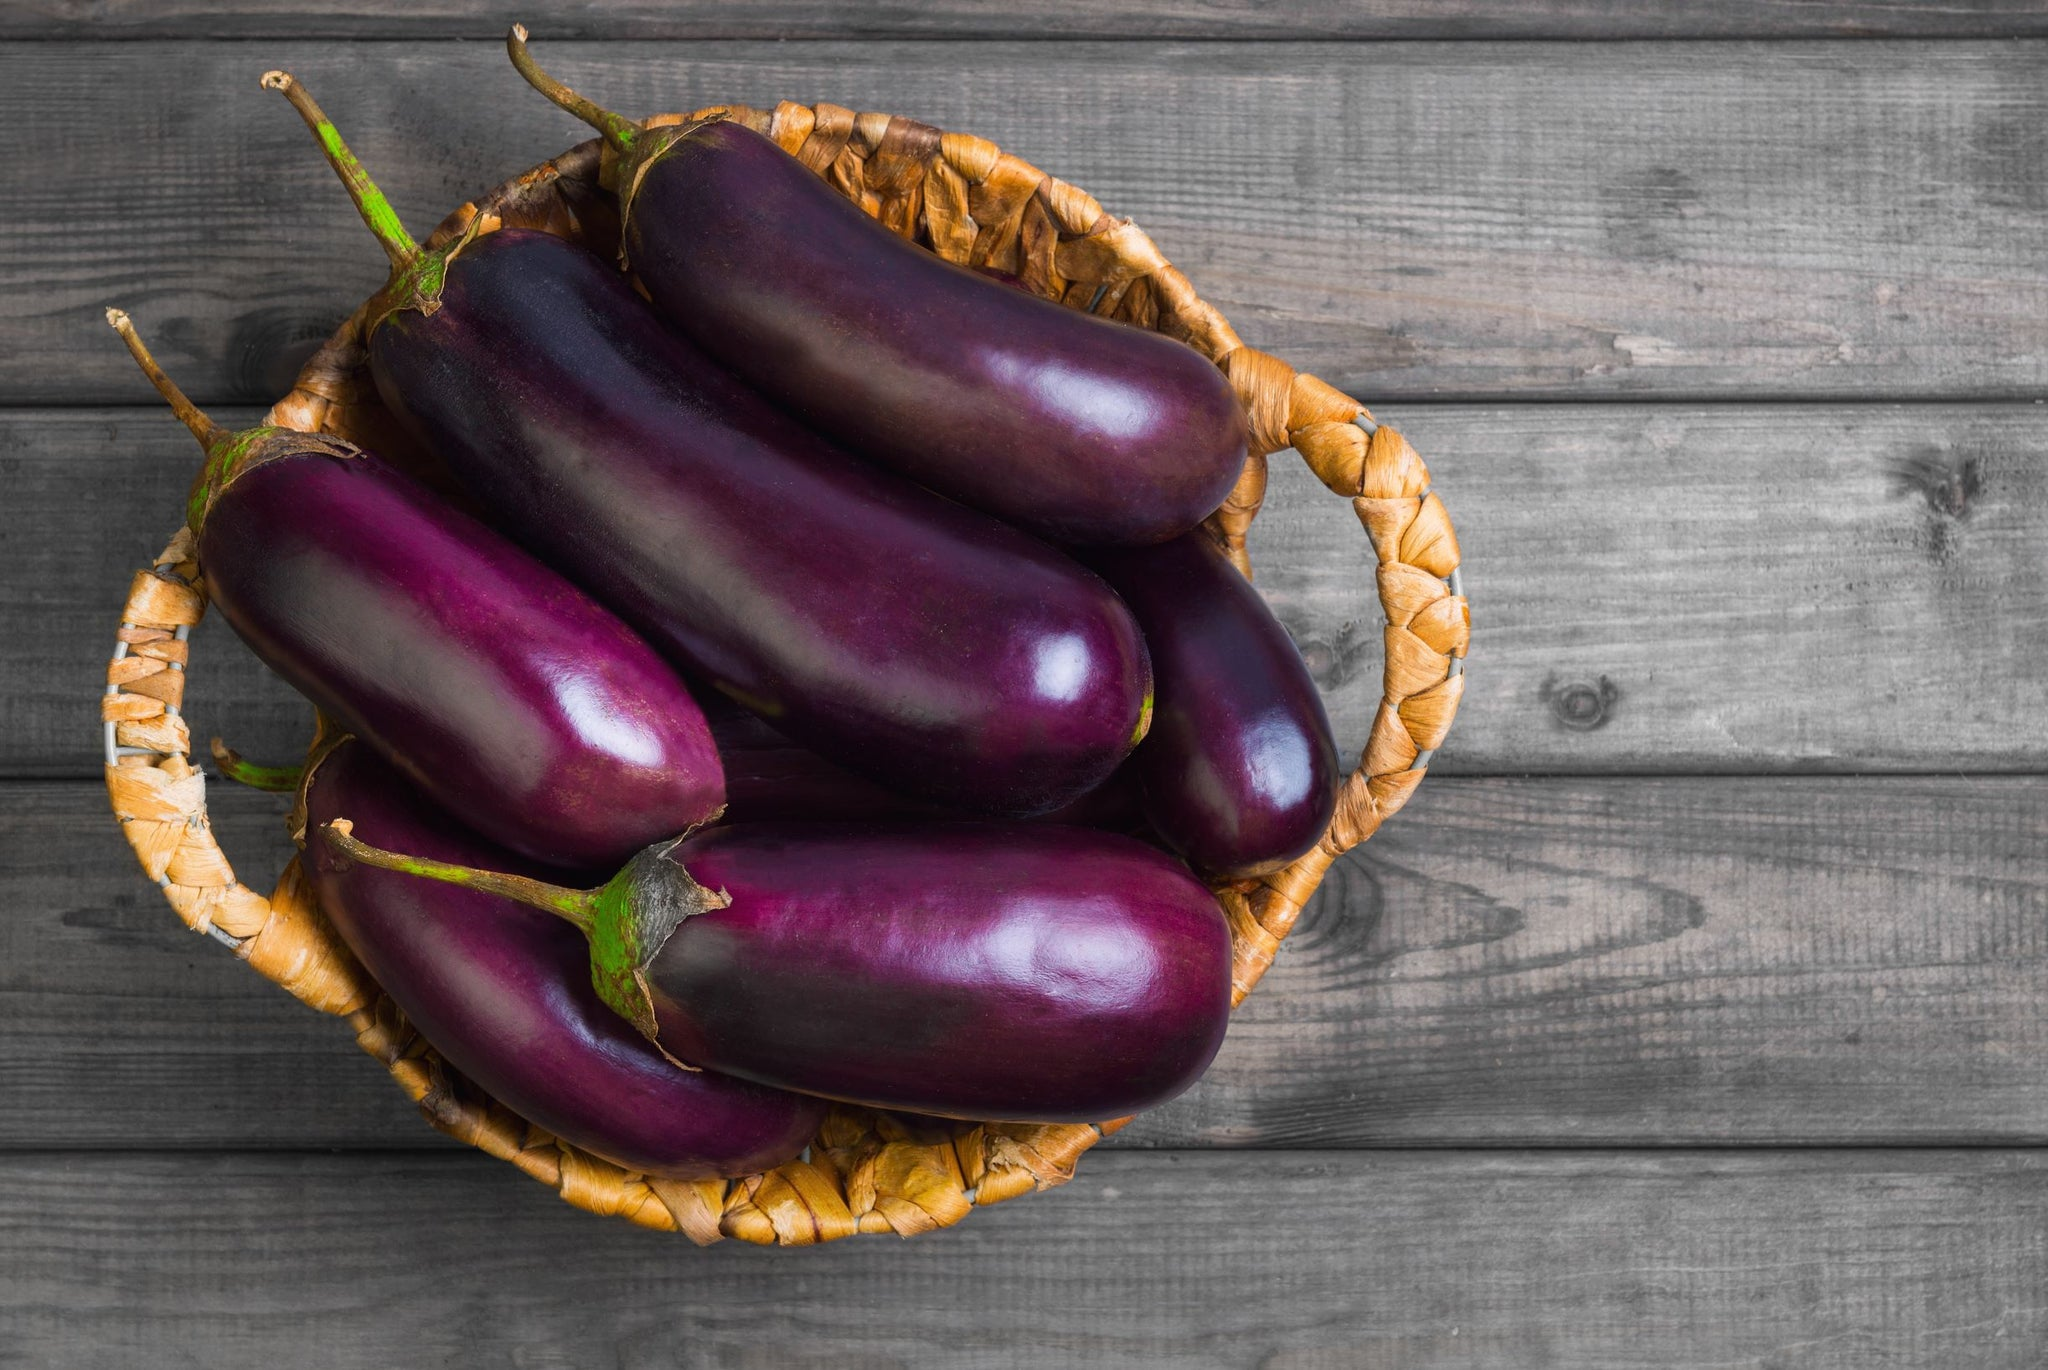 Sysco Imperial Eggplant 3 count - 1 Pack [$4.50/each]